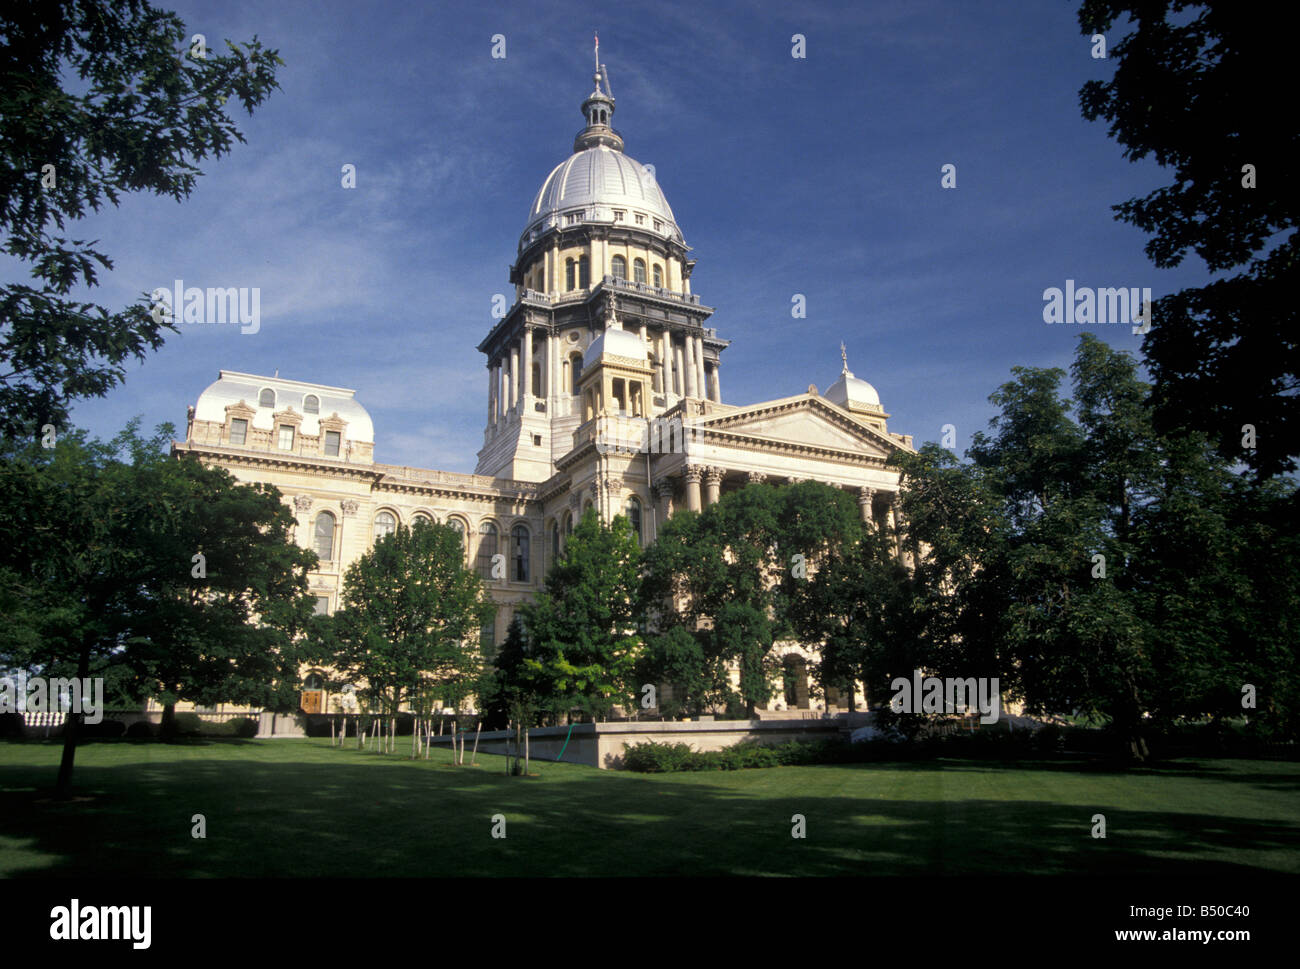 State Capitol building Springfield Illinois - Stock Image